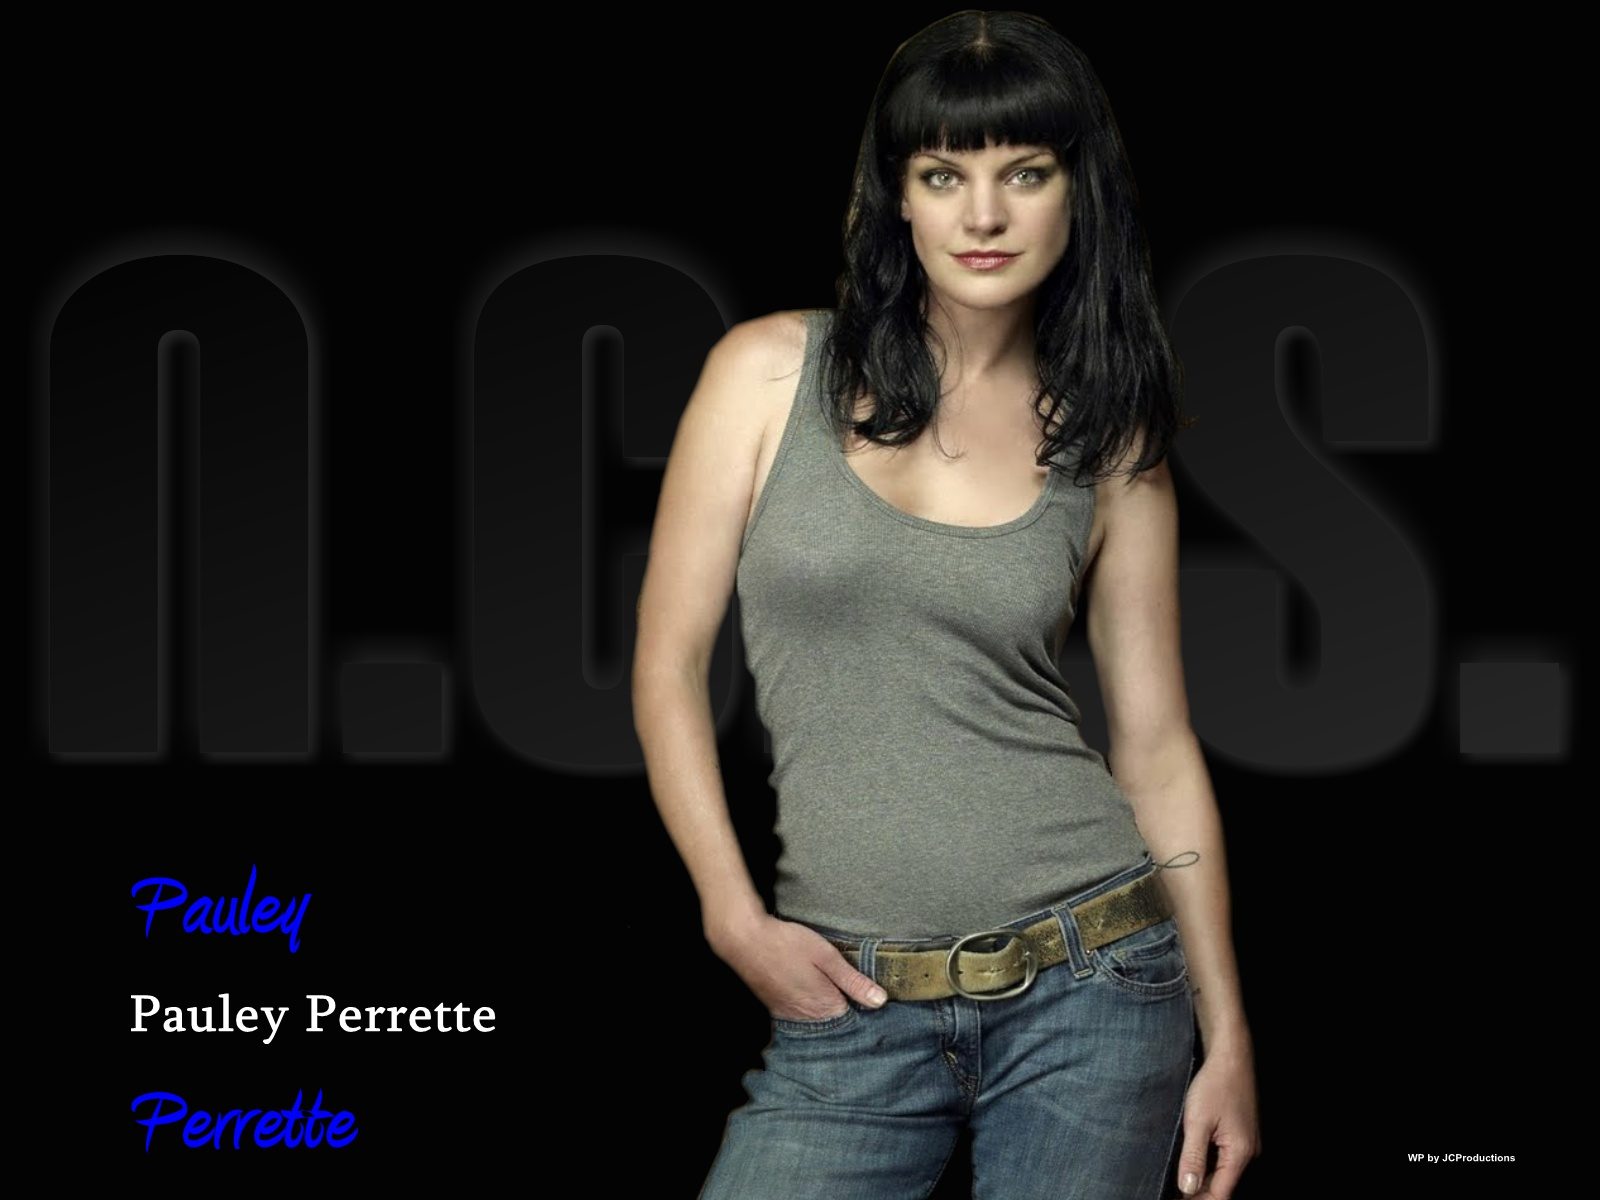 Pauley perrette hot sexy nude photos are